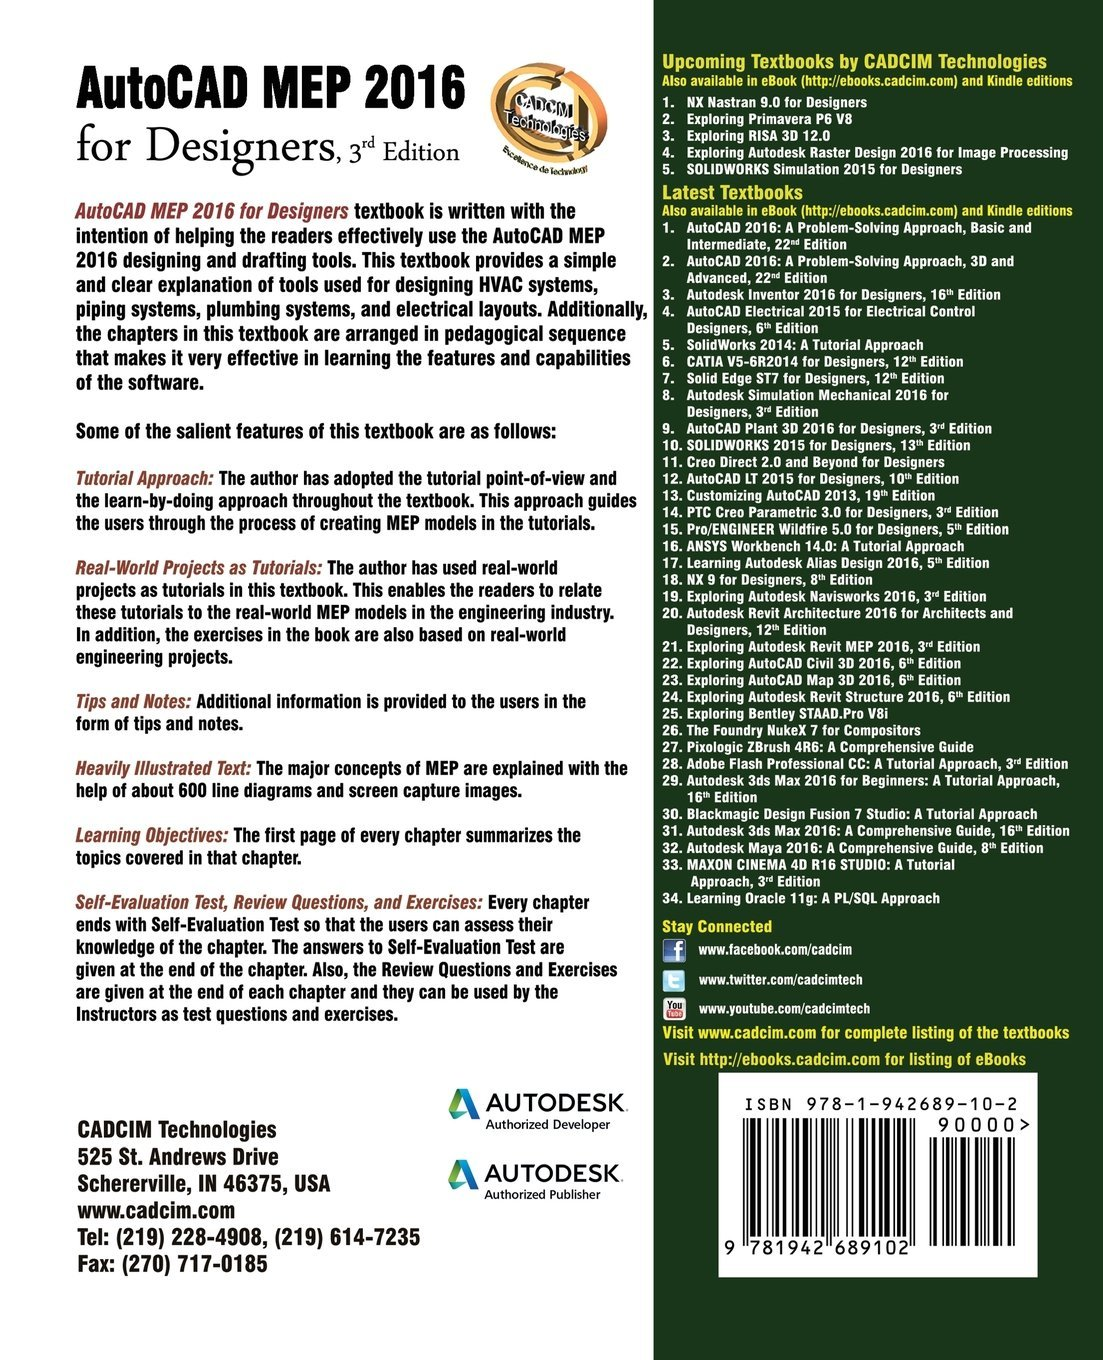 Autocad Mep 2016 For Designers 3rd Edition Prof Sham Tickoo Drawing Hvac Systems Purdue Univ 9781942689102 Books